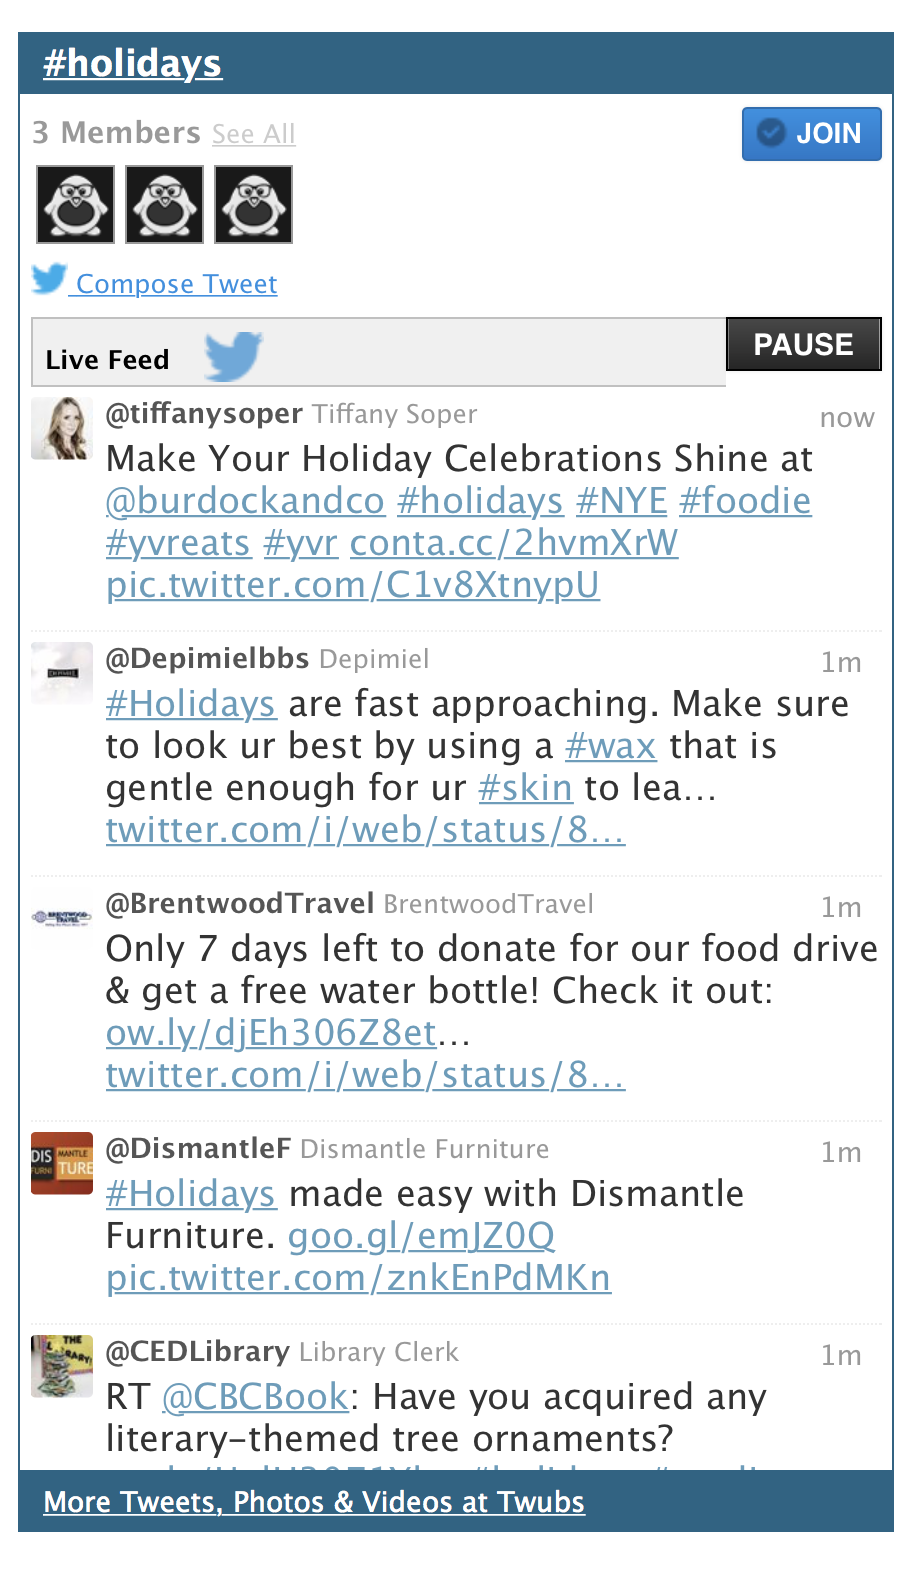 holiday-hashtags-for-brands